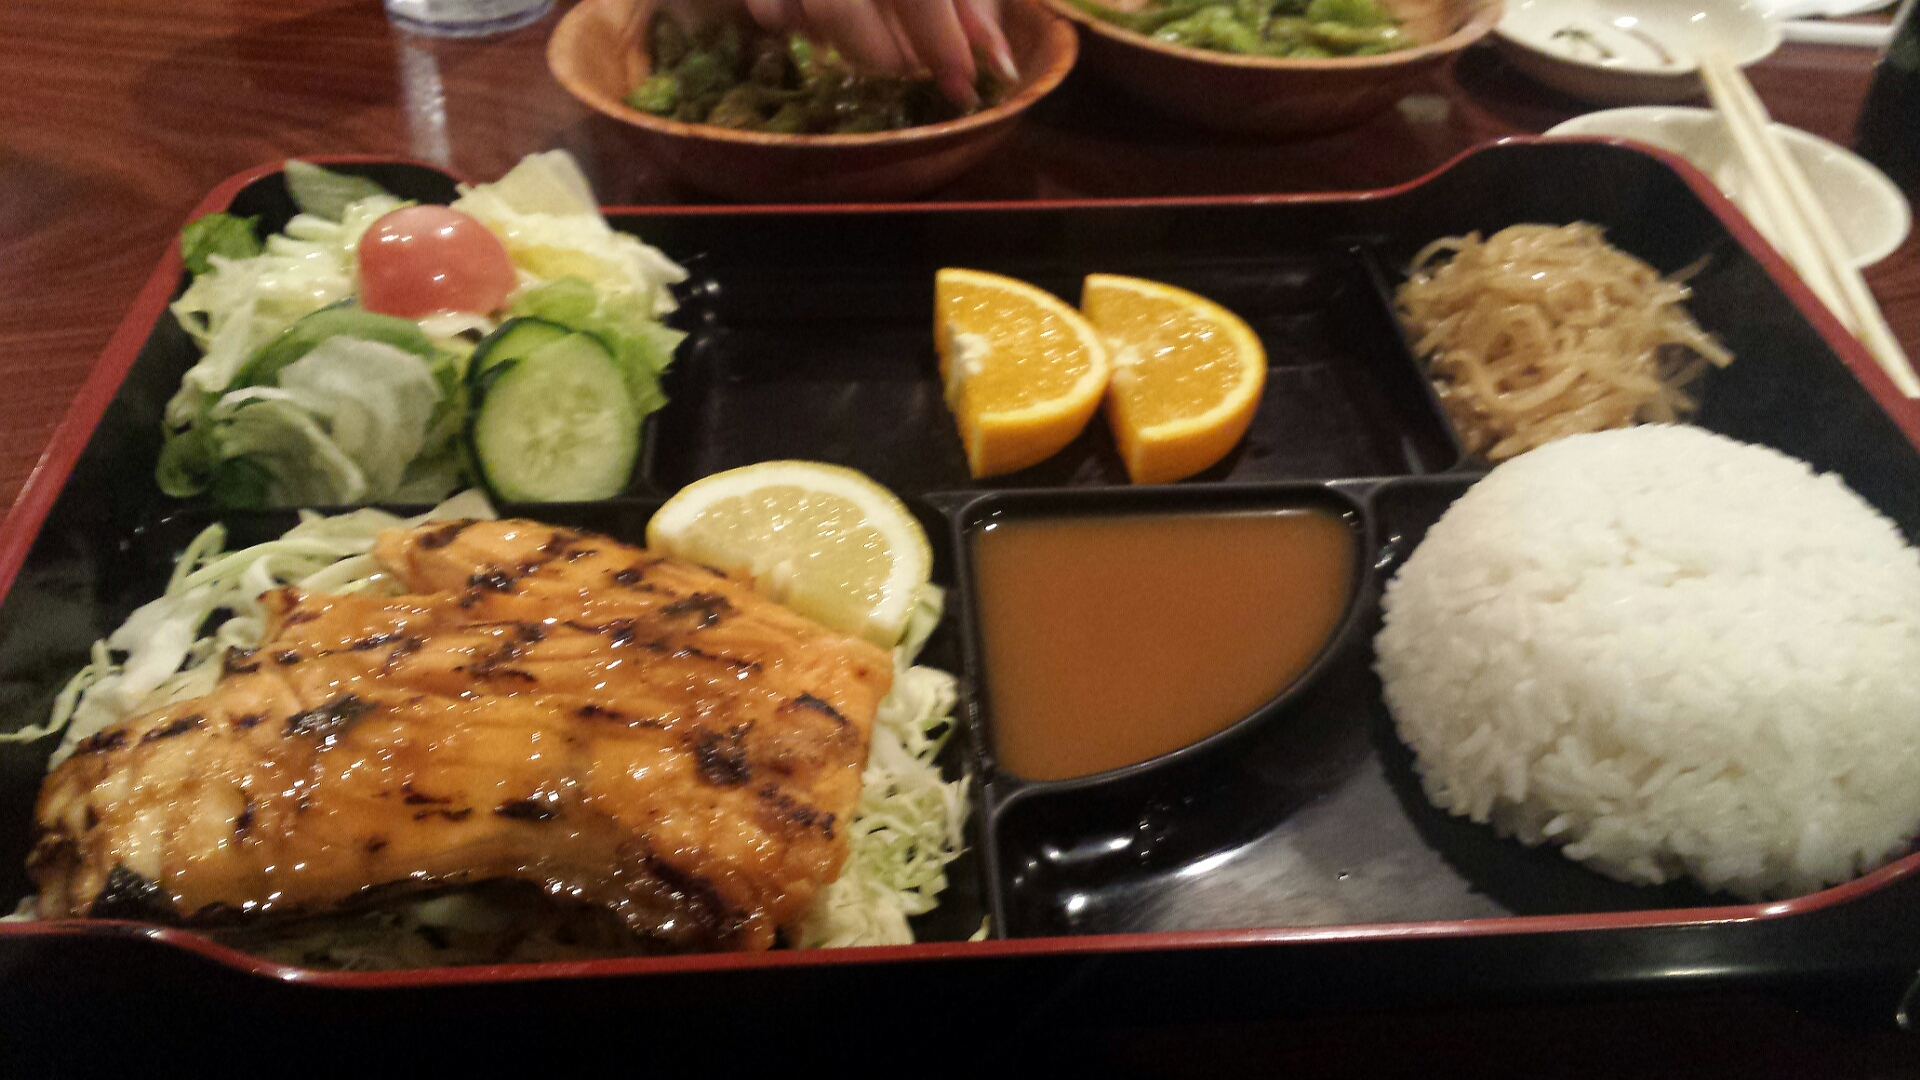 Salmon Misoyaki   - grilled salmon marinated in a sweet and salty miso sauce